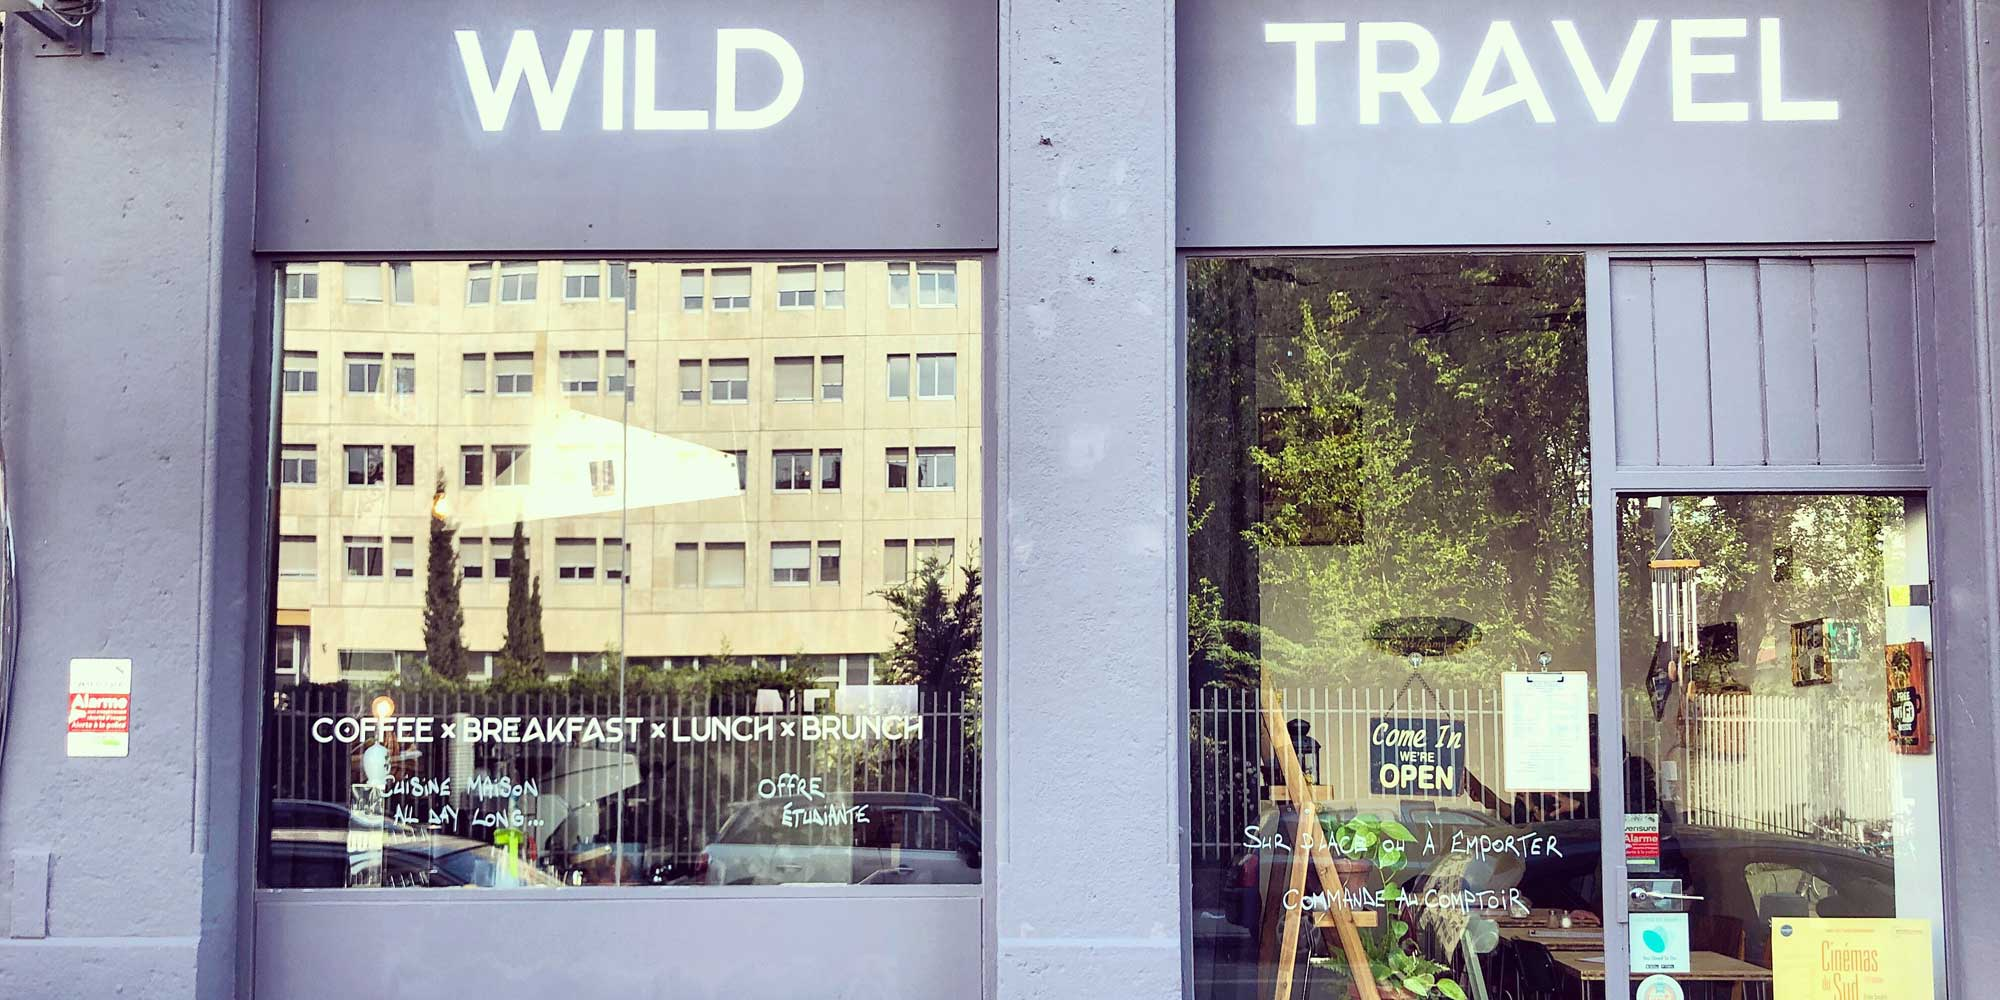 Brunch Wild Travel (69007 Lyon)